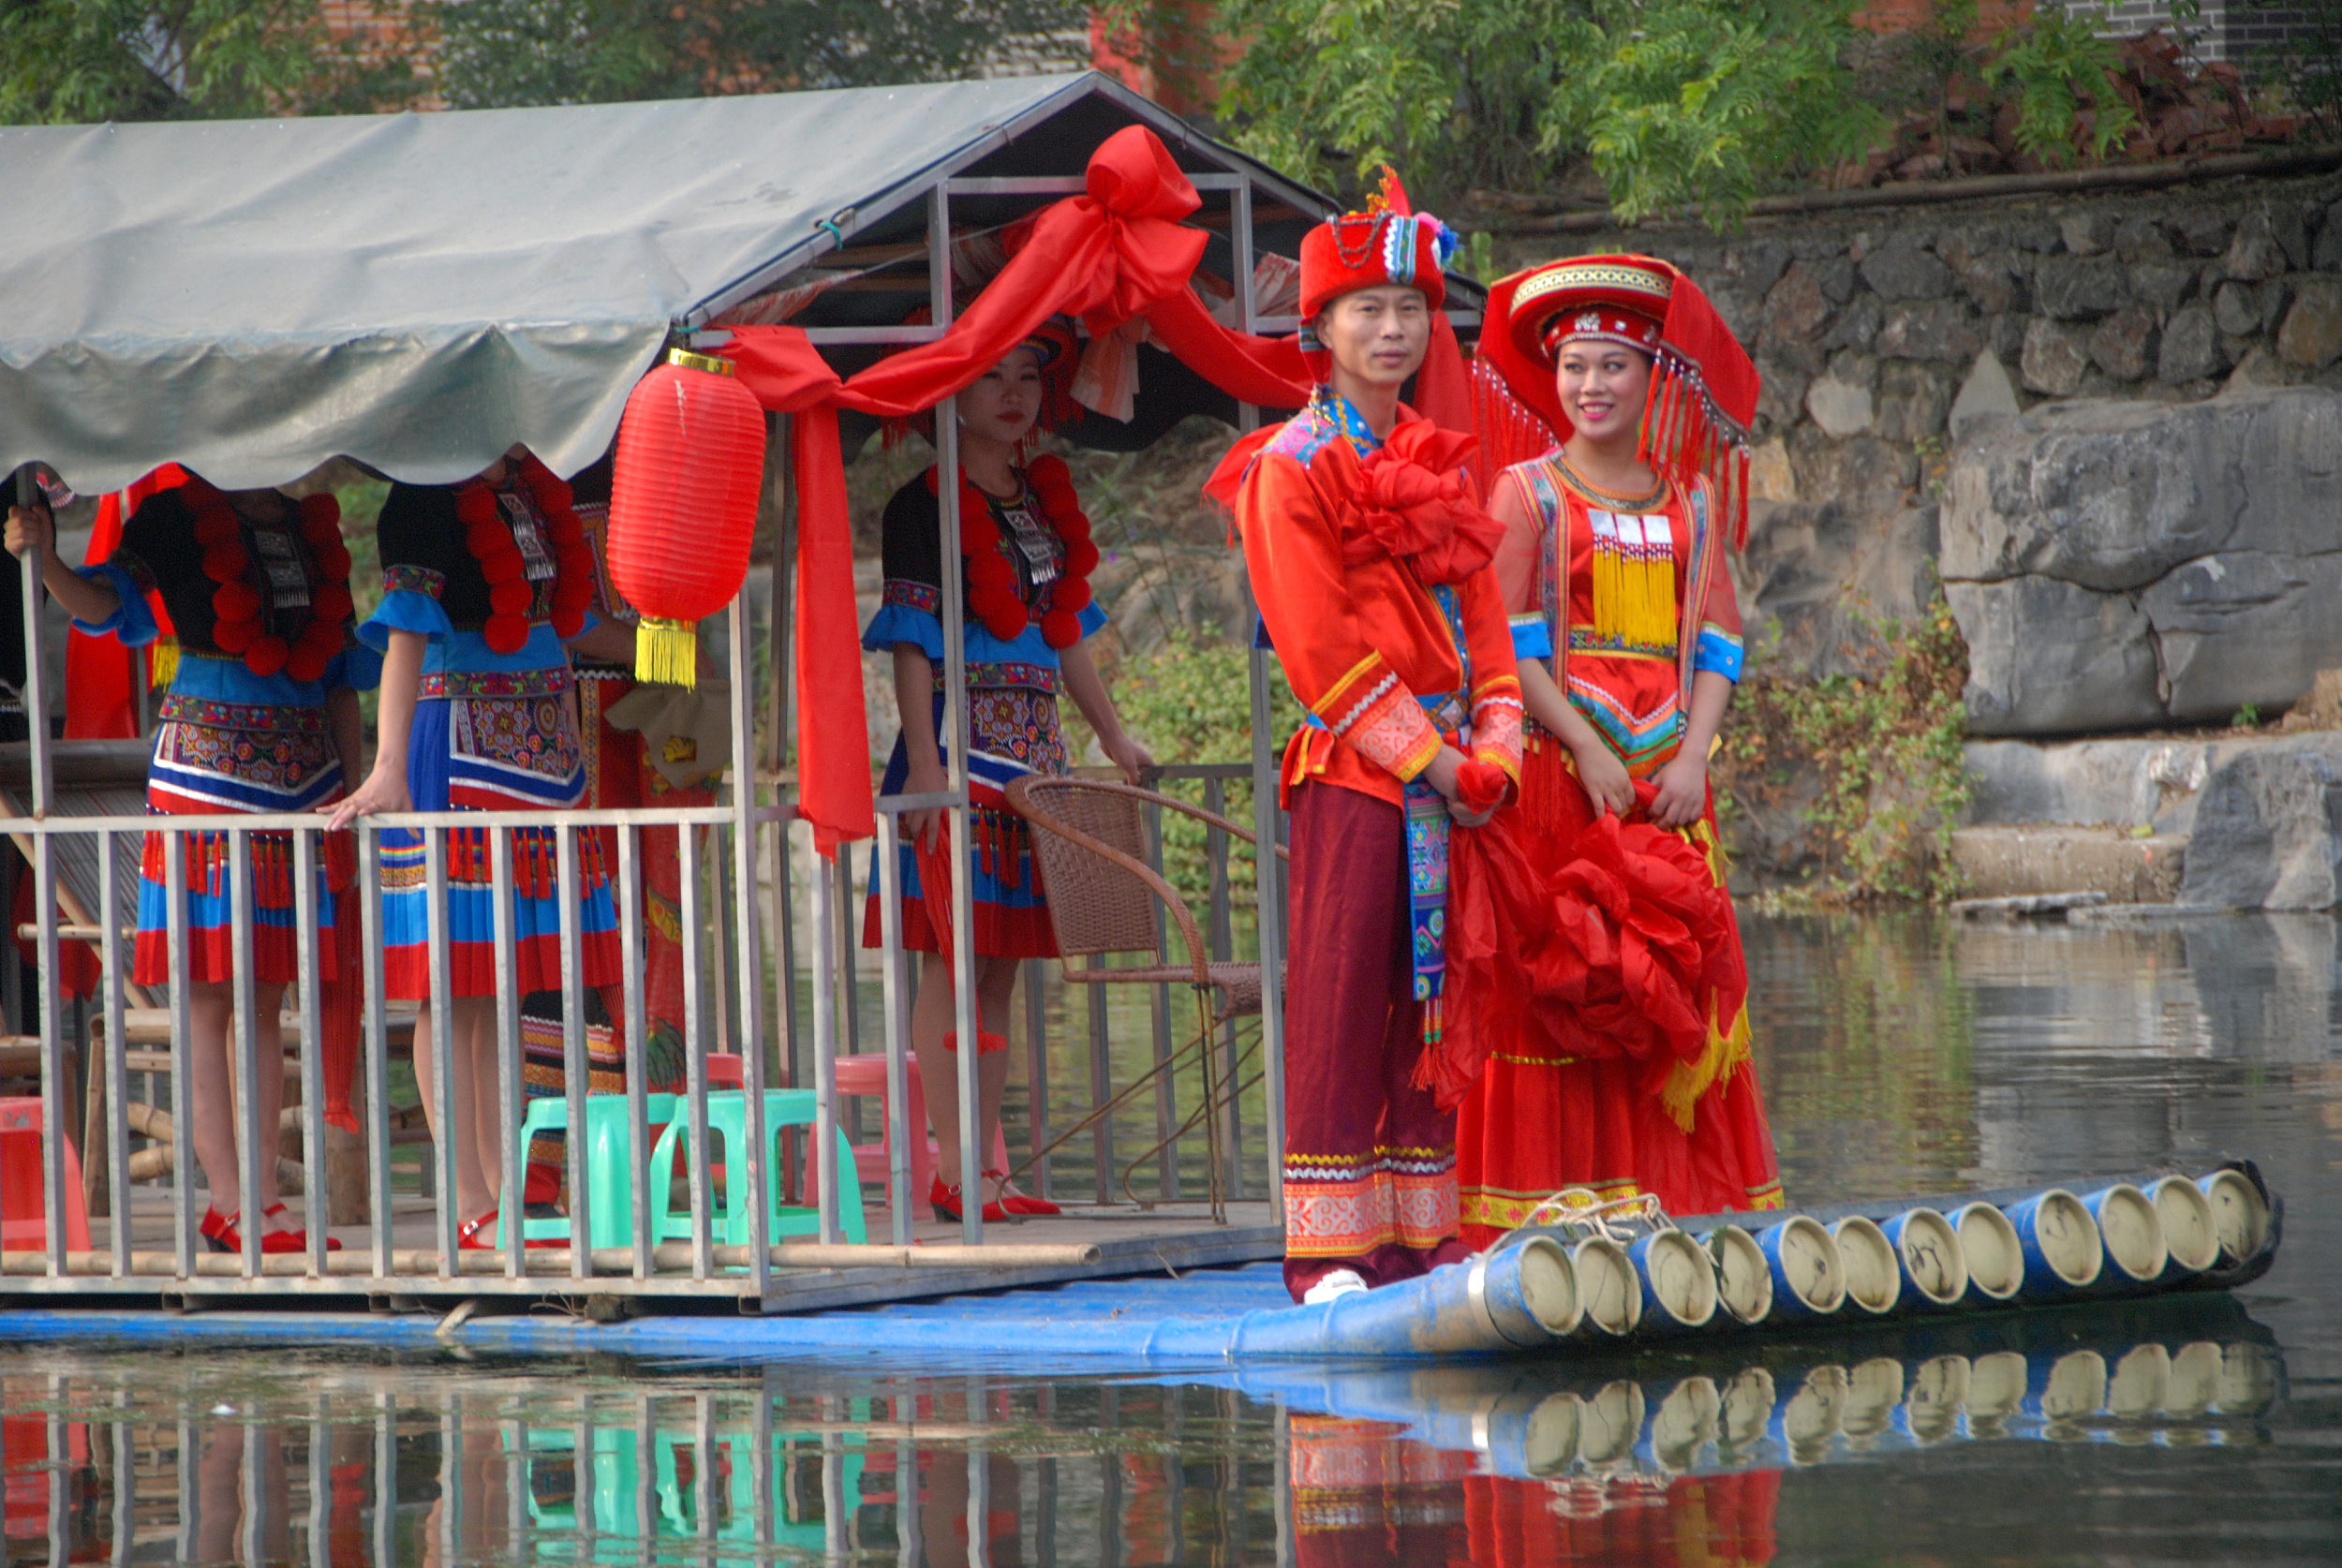 A bride and groom at their wedding in the Gongcheng Yao autonomous county in Southwest China's Guangxi Zhuang autonomous region on Nov. 4, 2017. Photo: VCG